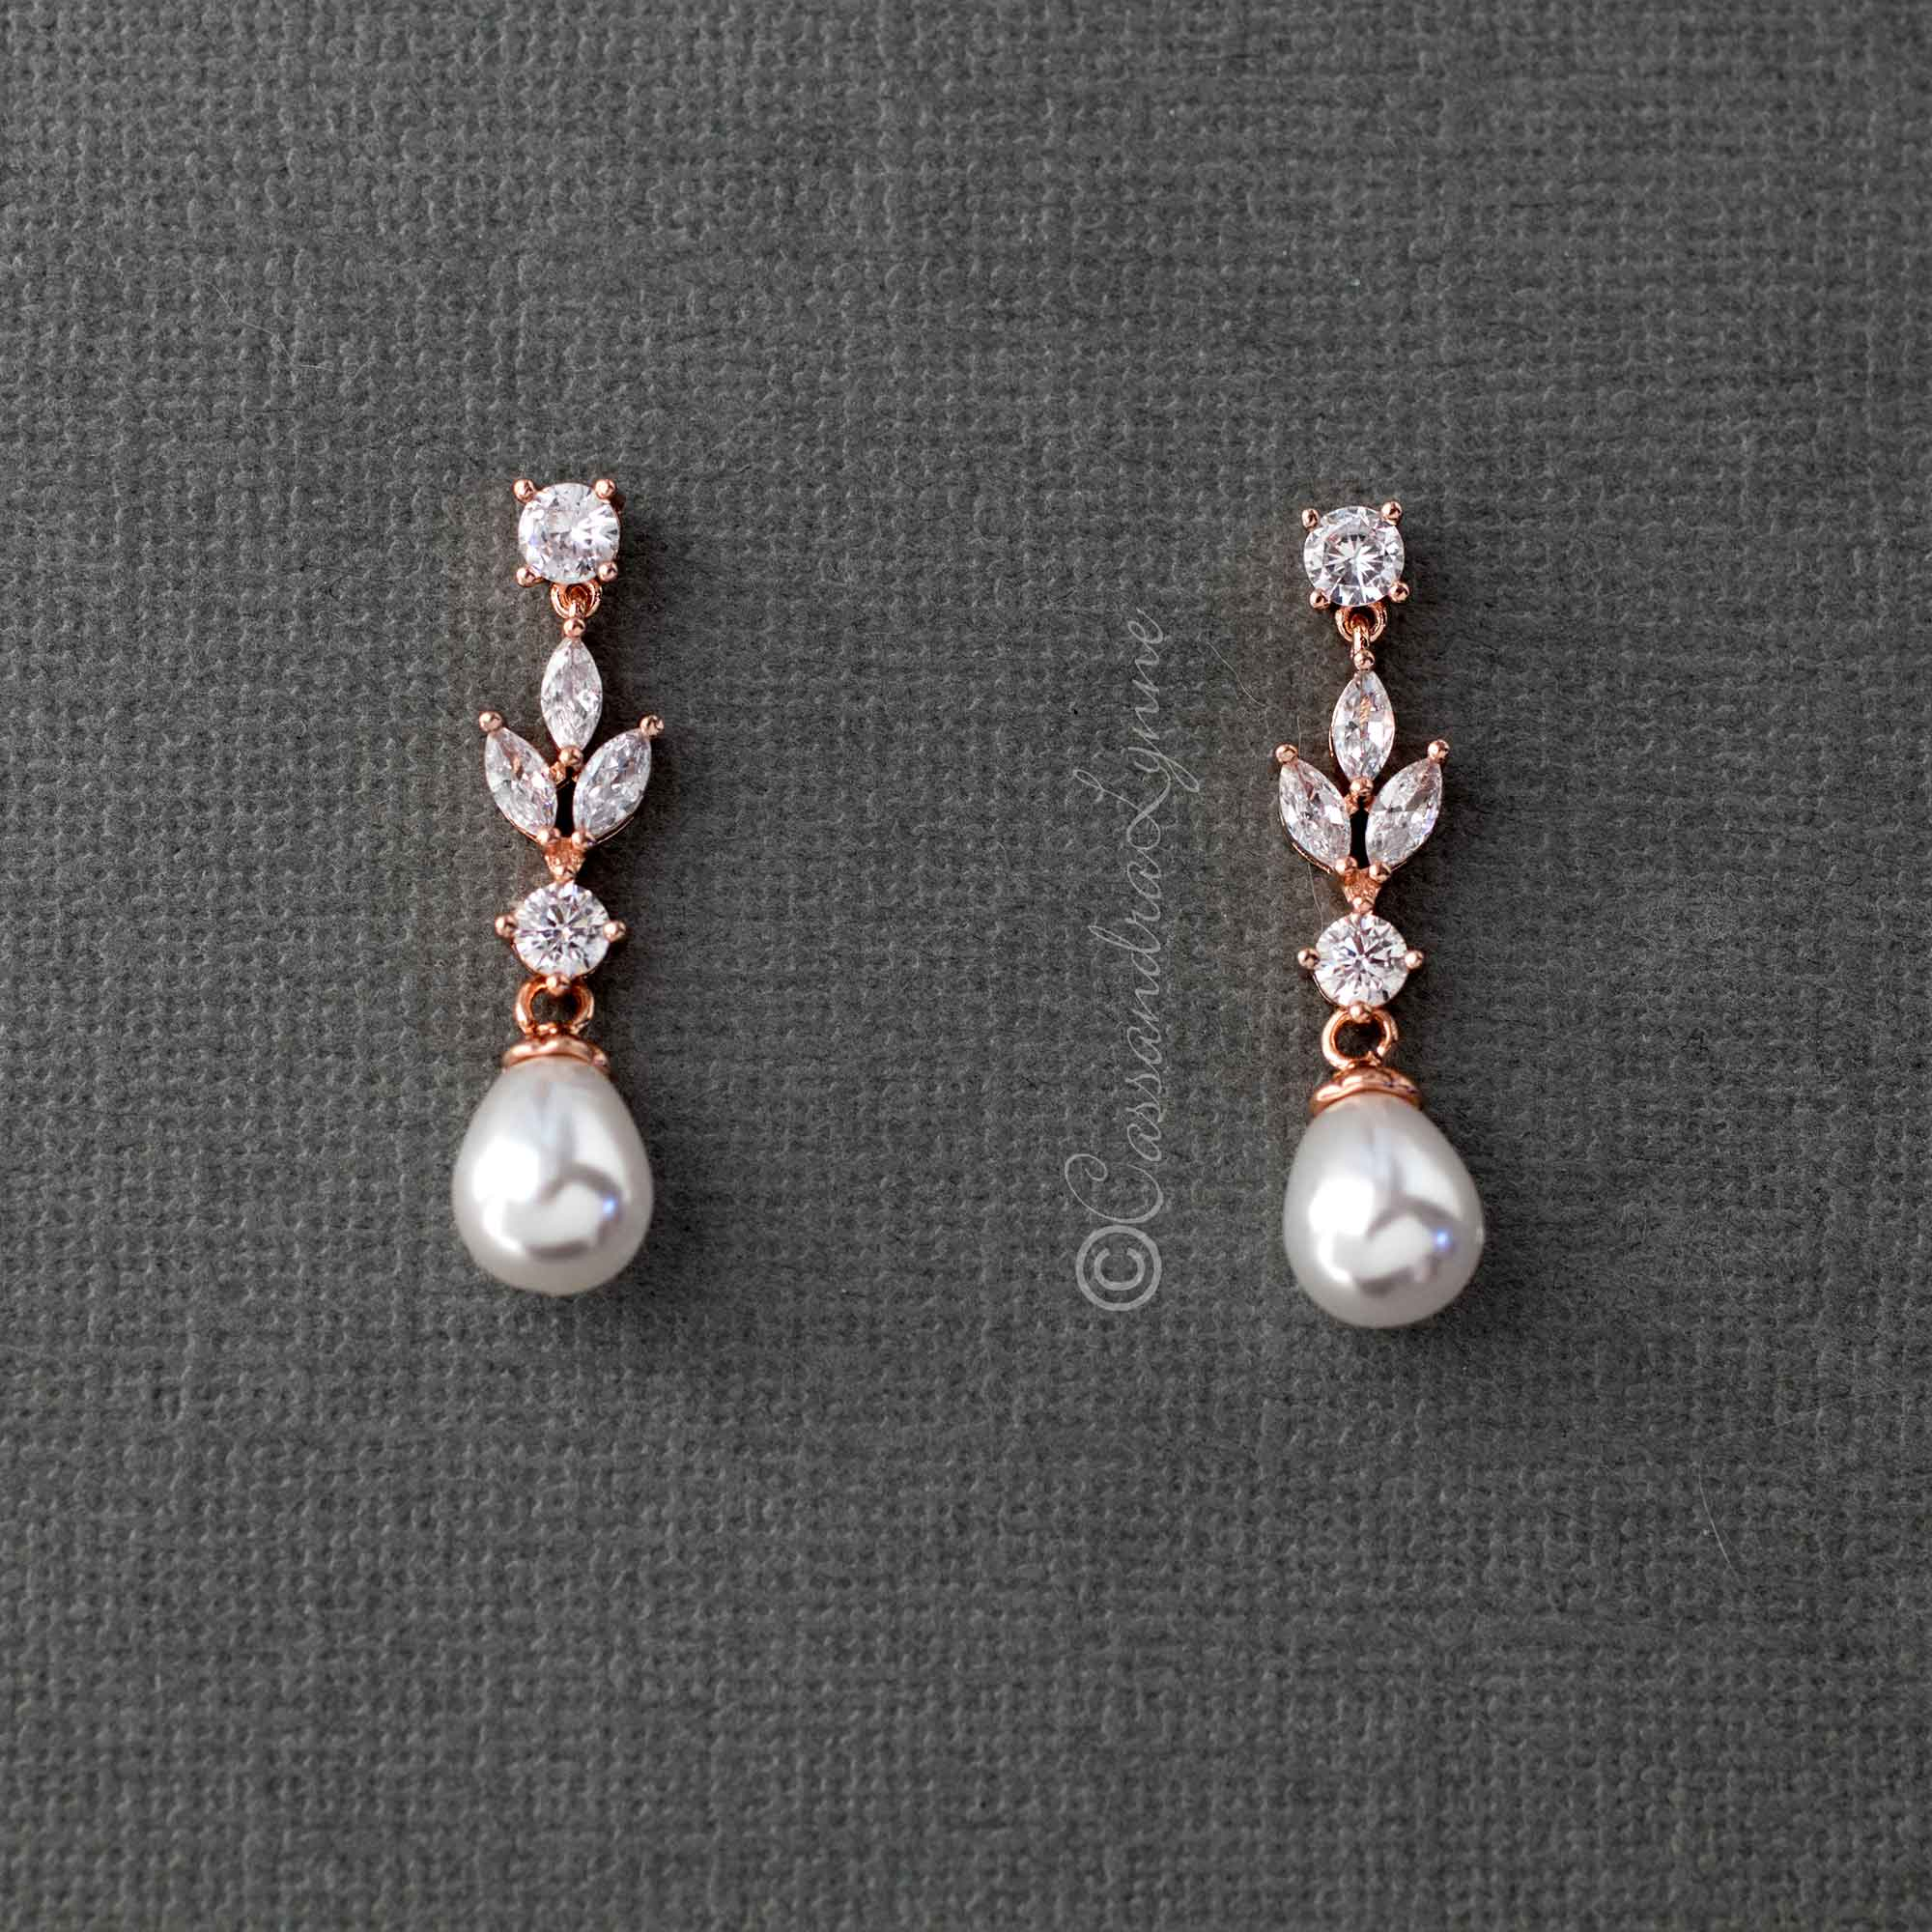 Bridal Earrings of Teardrop Pearls and CZ